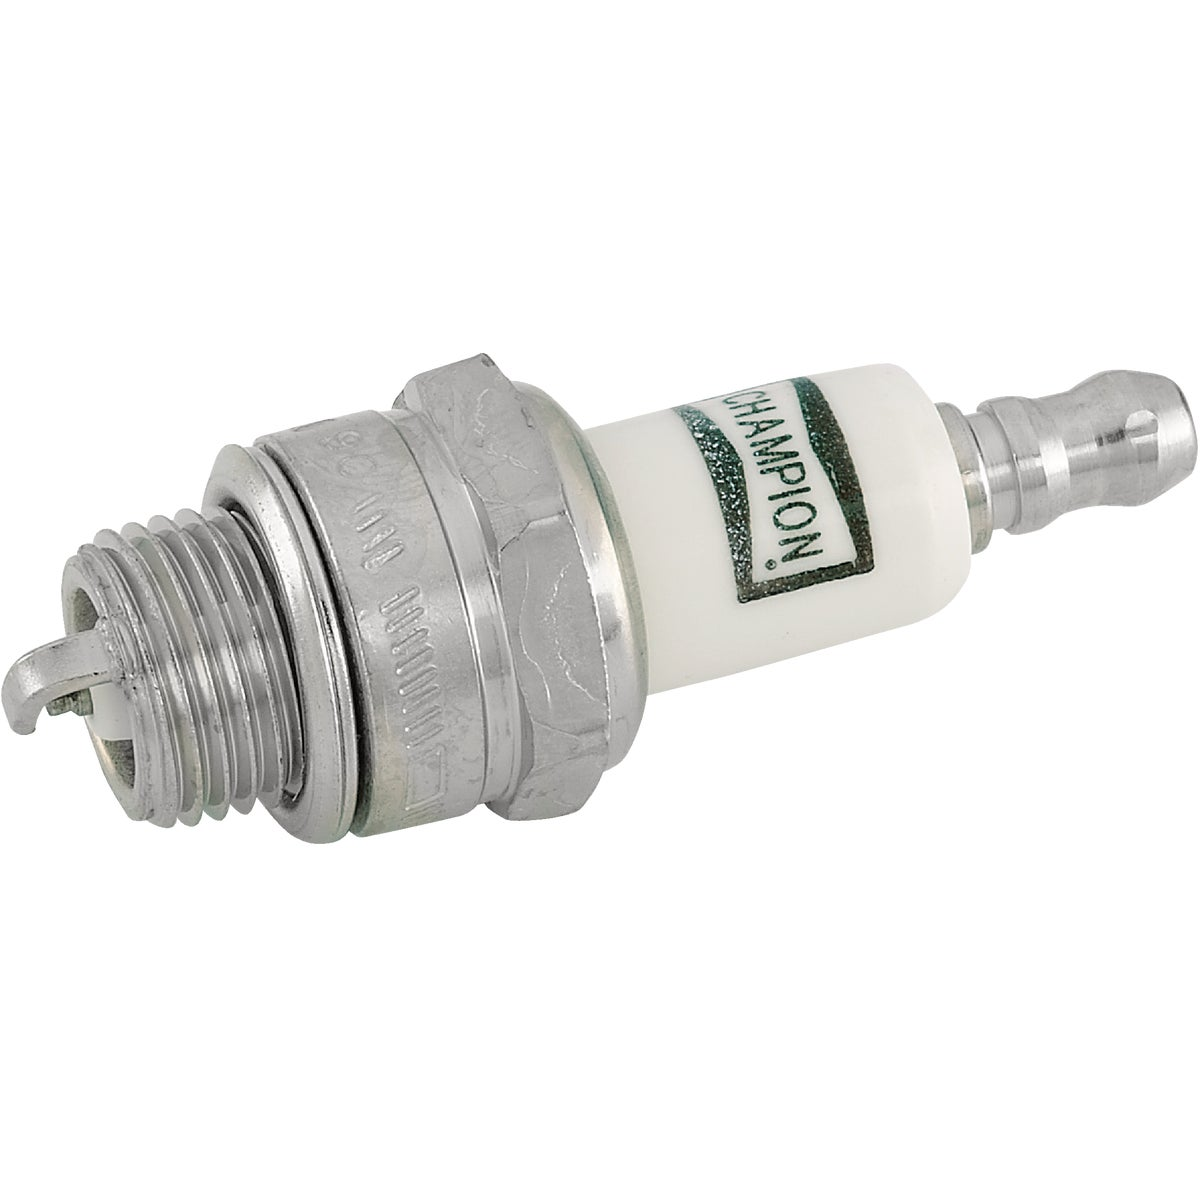 CJ14 EZ START SPARK PLUG - 5846 by Federal Mogul